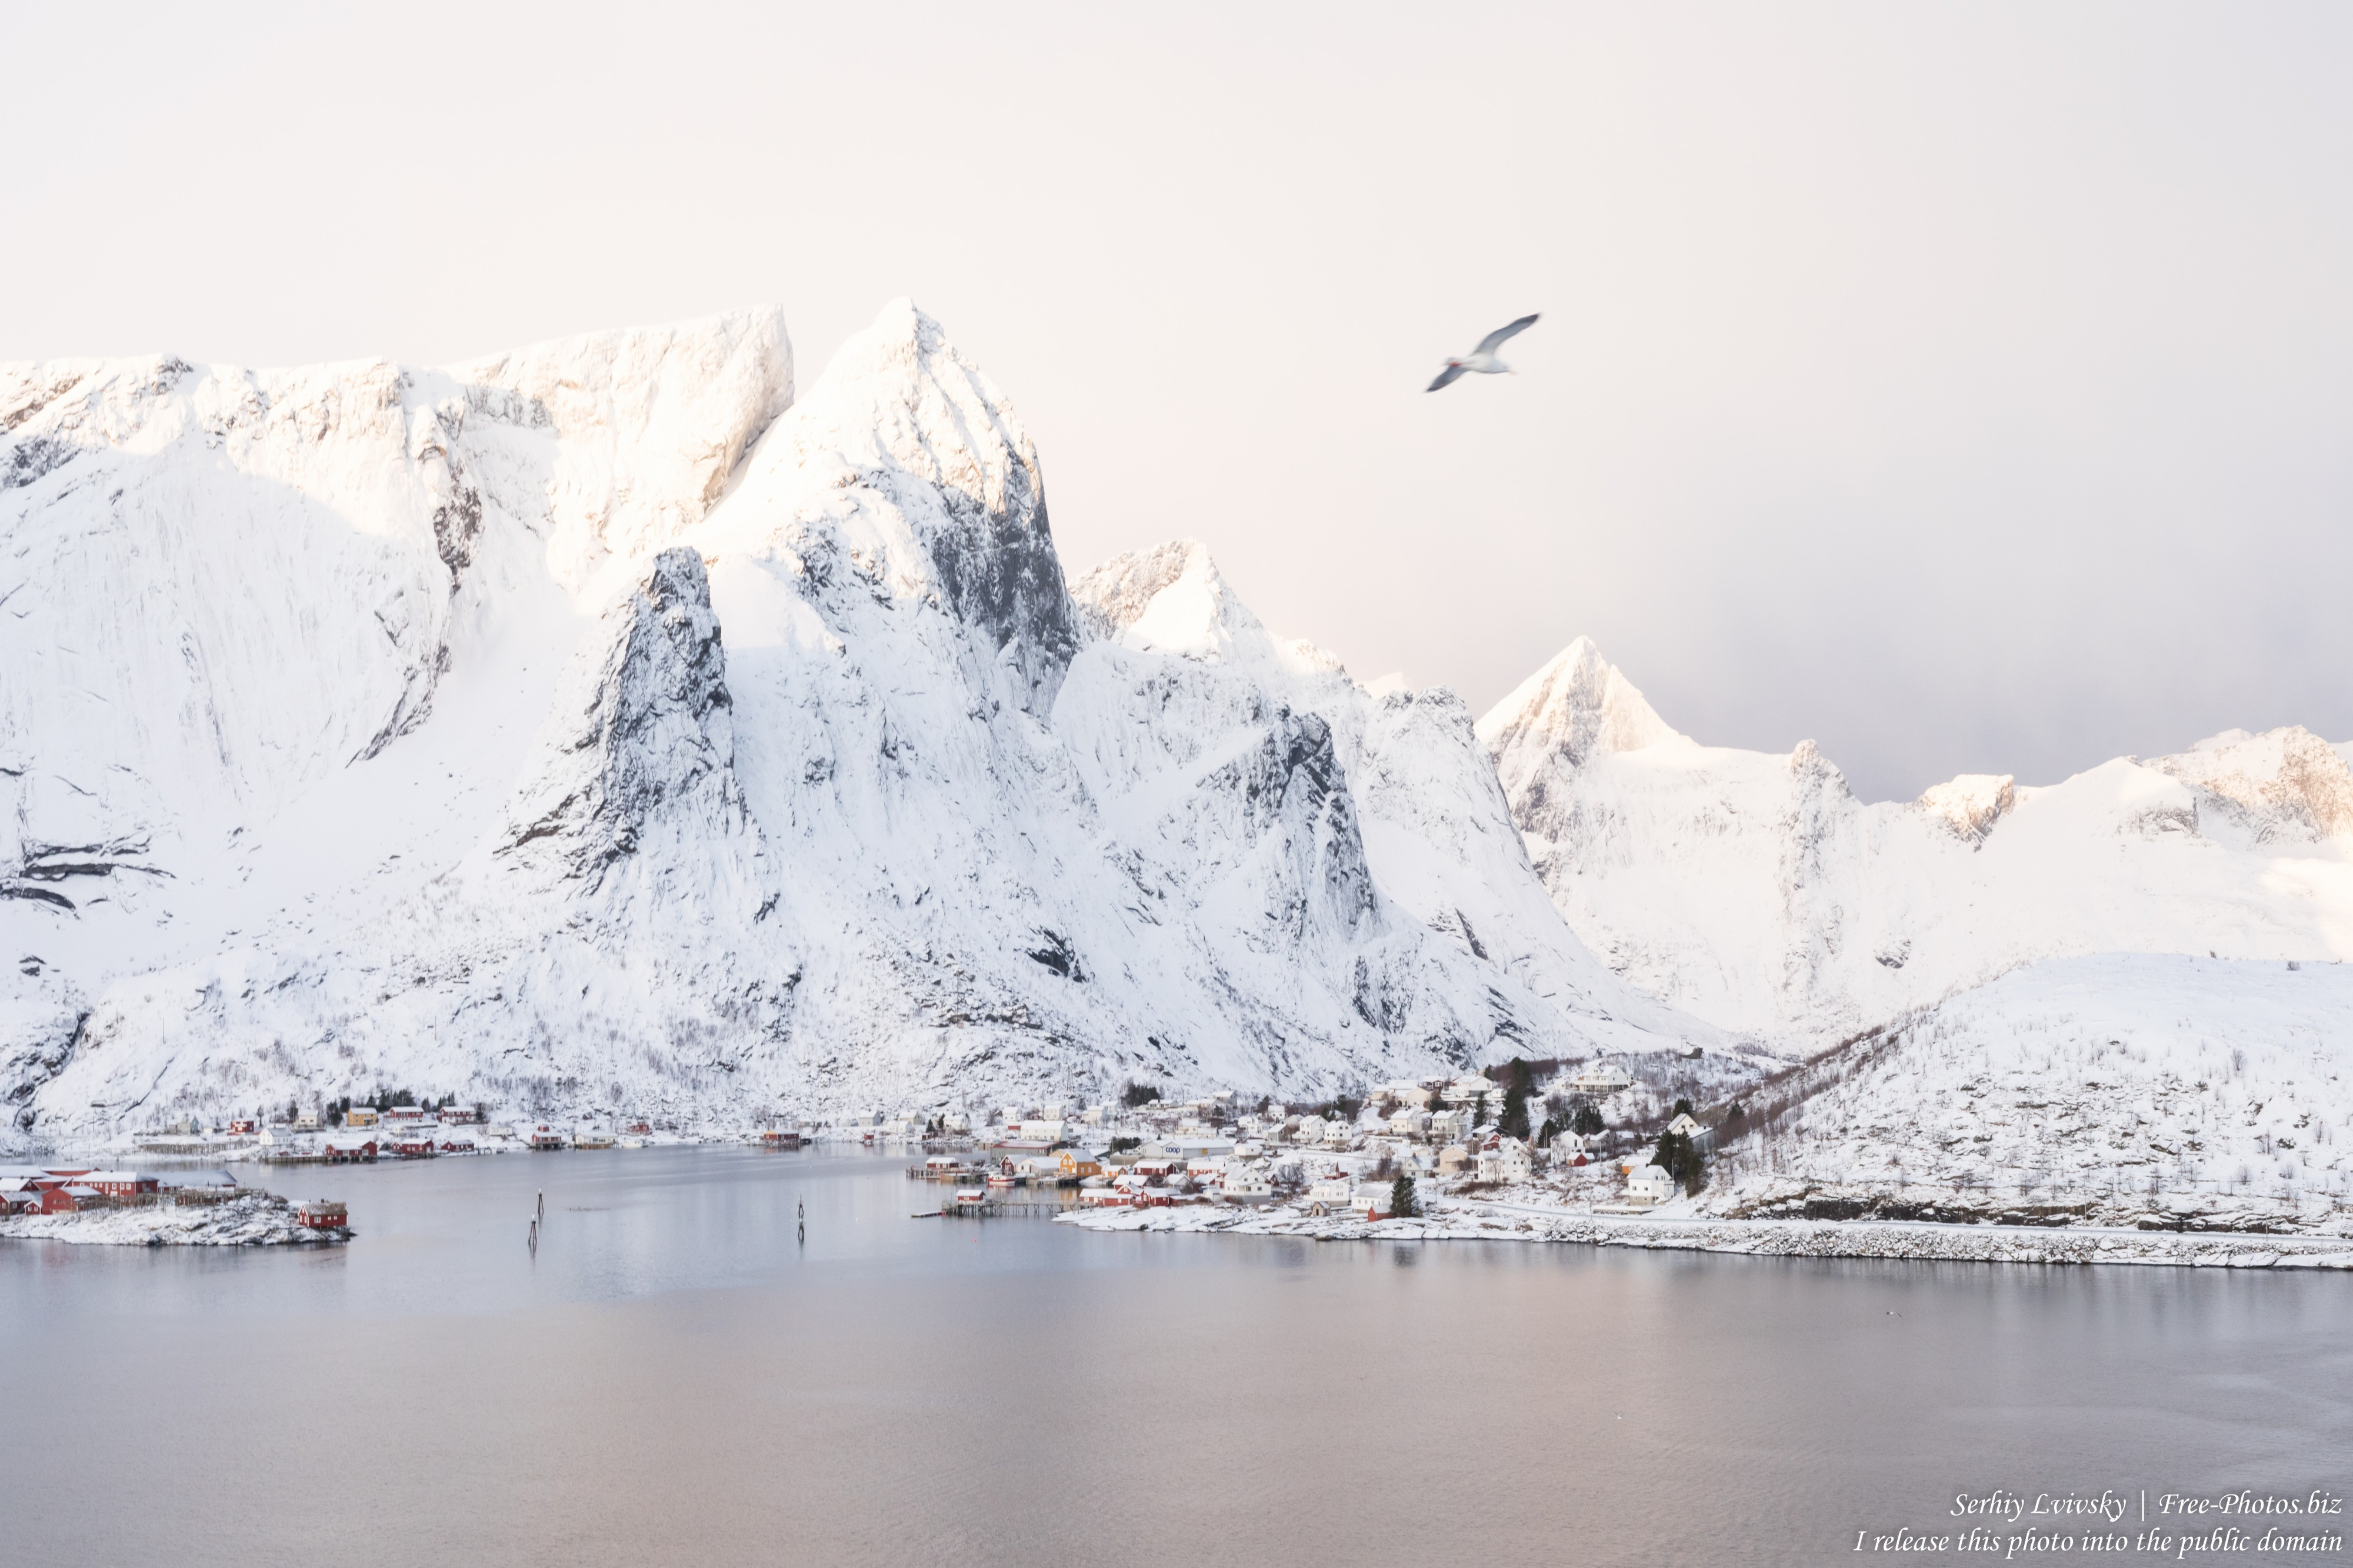 Sakrisoy and surroundings, Norway, in February 2020 by Serhiy Lvivsky, picture 25